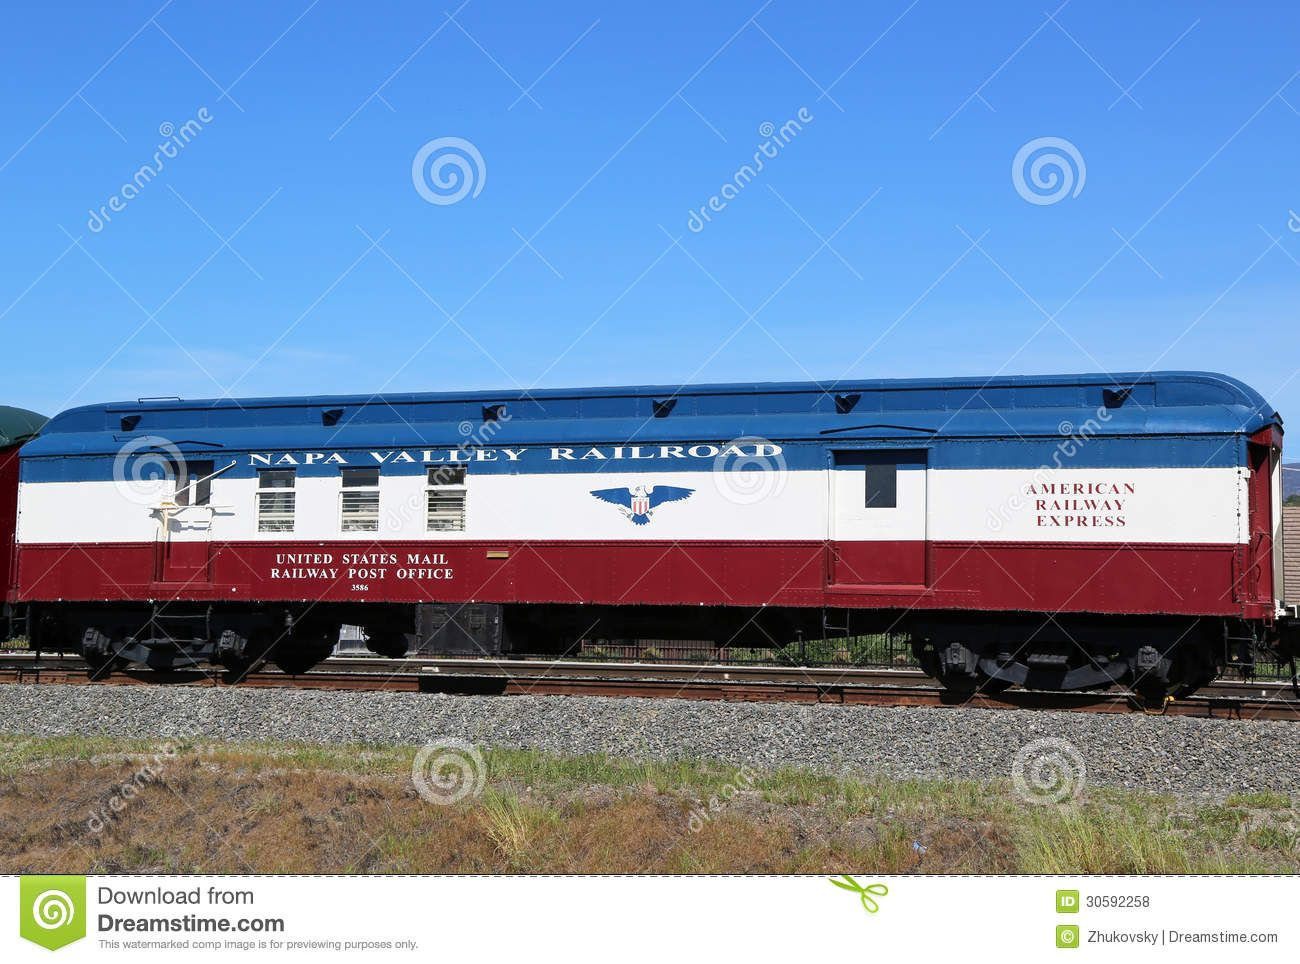 US mail railway post office car  | Train Cars | Train, Train car